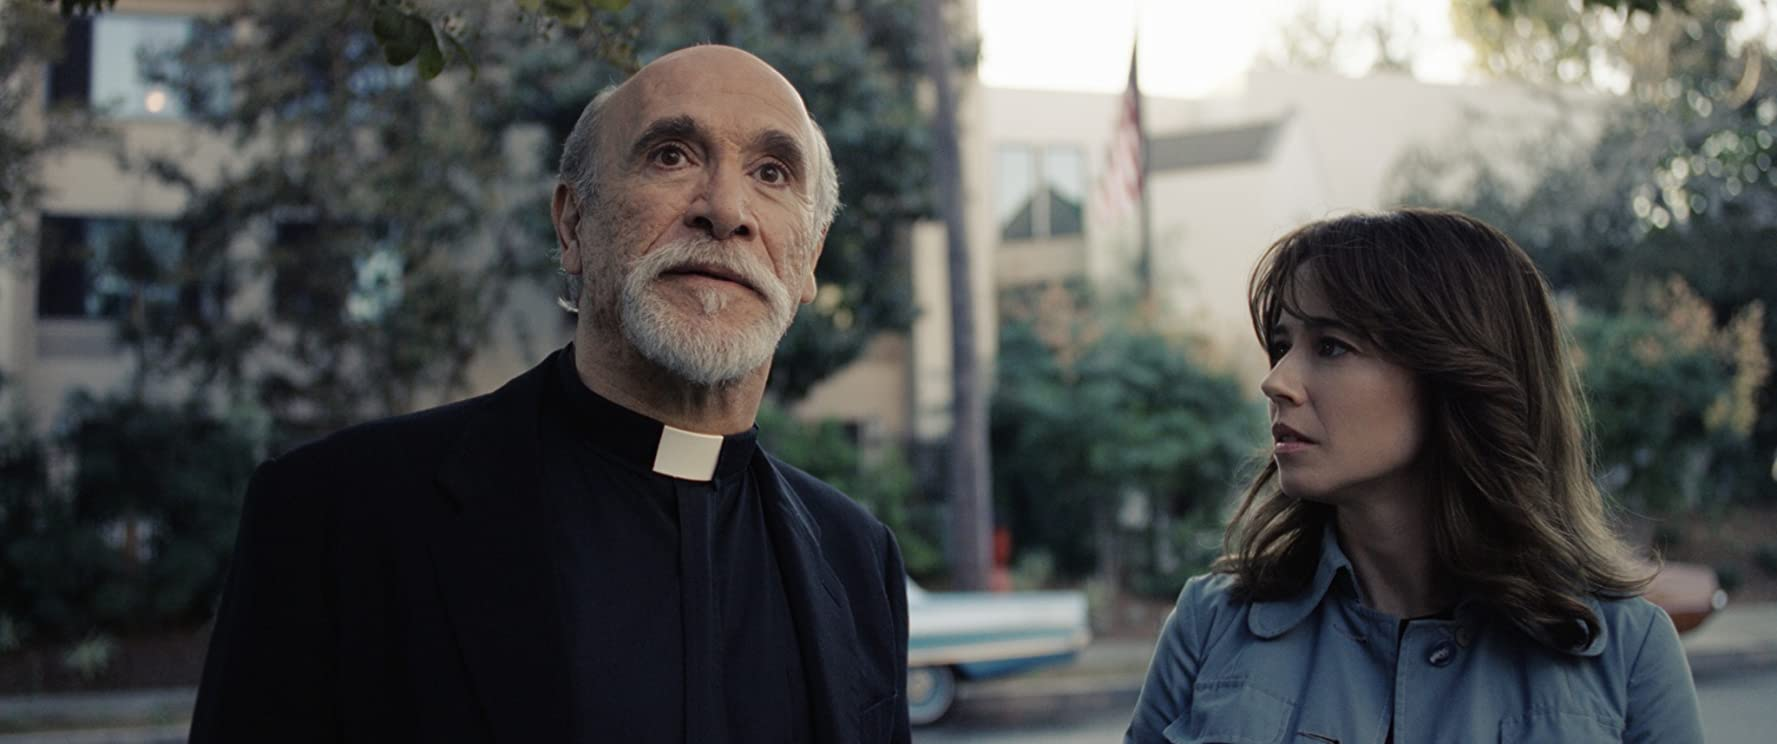 Linda Cardellini and Tony Amendola in The Curse of La Llorona (2019)